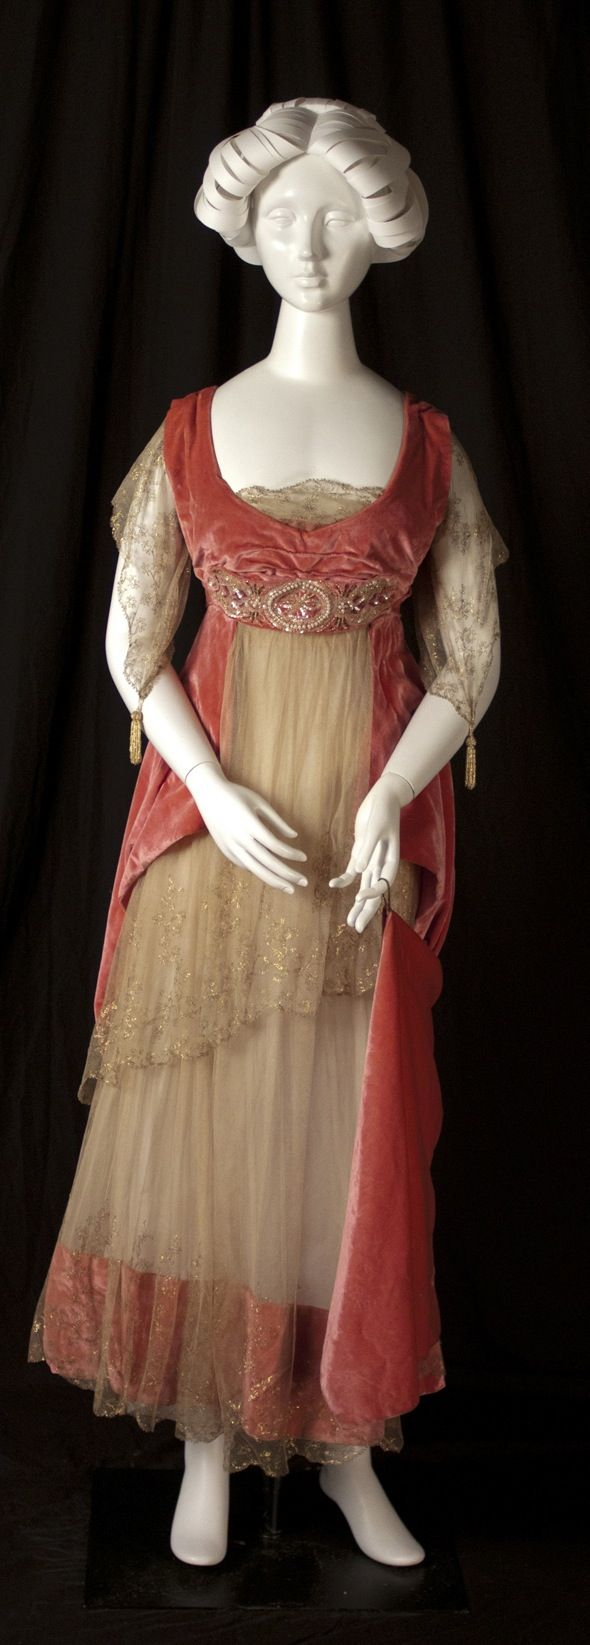 Emma Watts wore this dress to several local cotillion dances in 1915. Elmwood collection / Eastern Kentucky University.